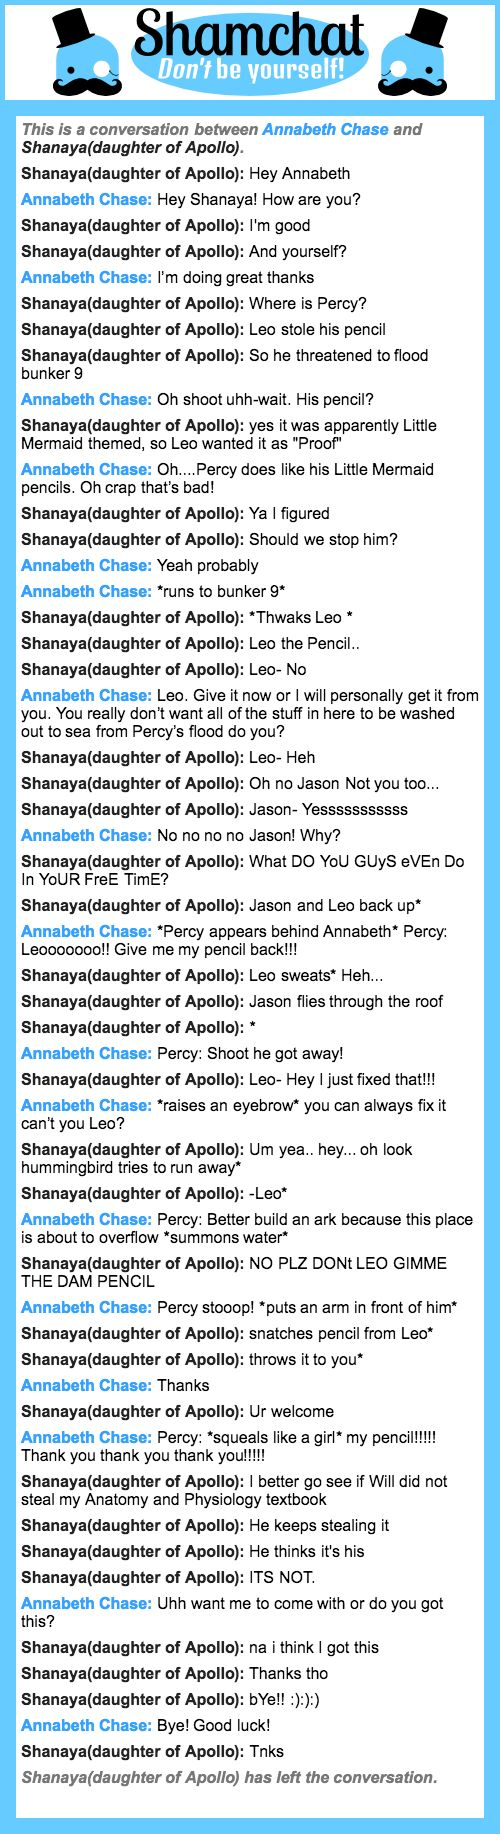 A conversation between Shanaya(daughter of Apollo) and Annabeth Chase